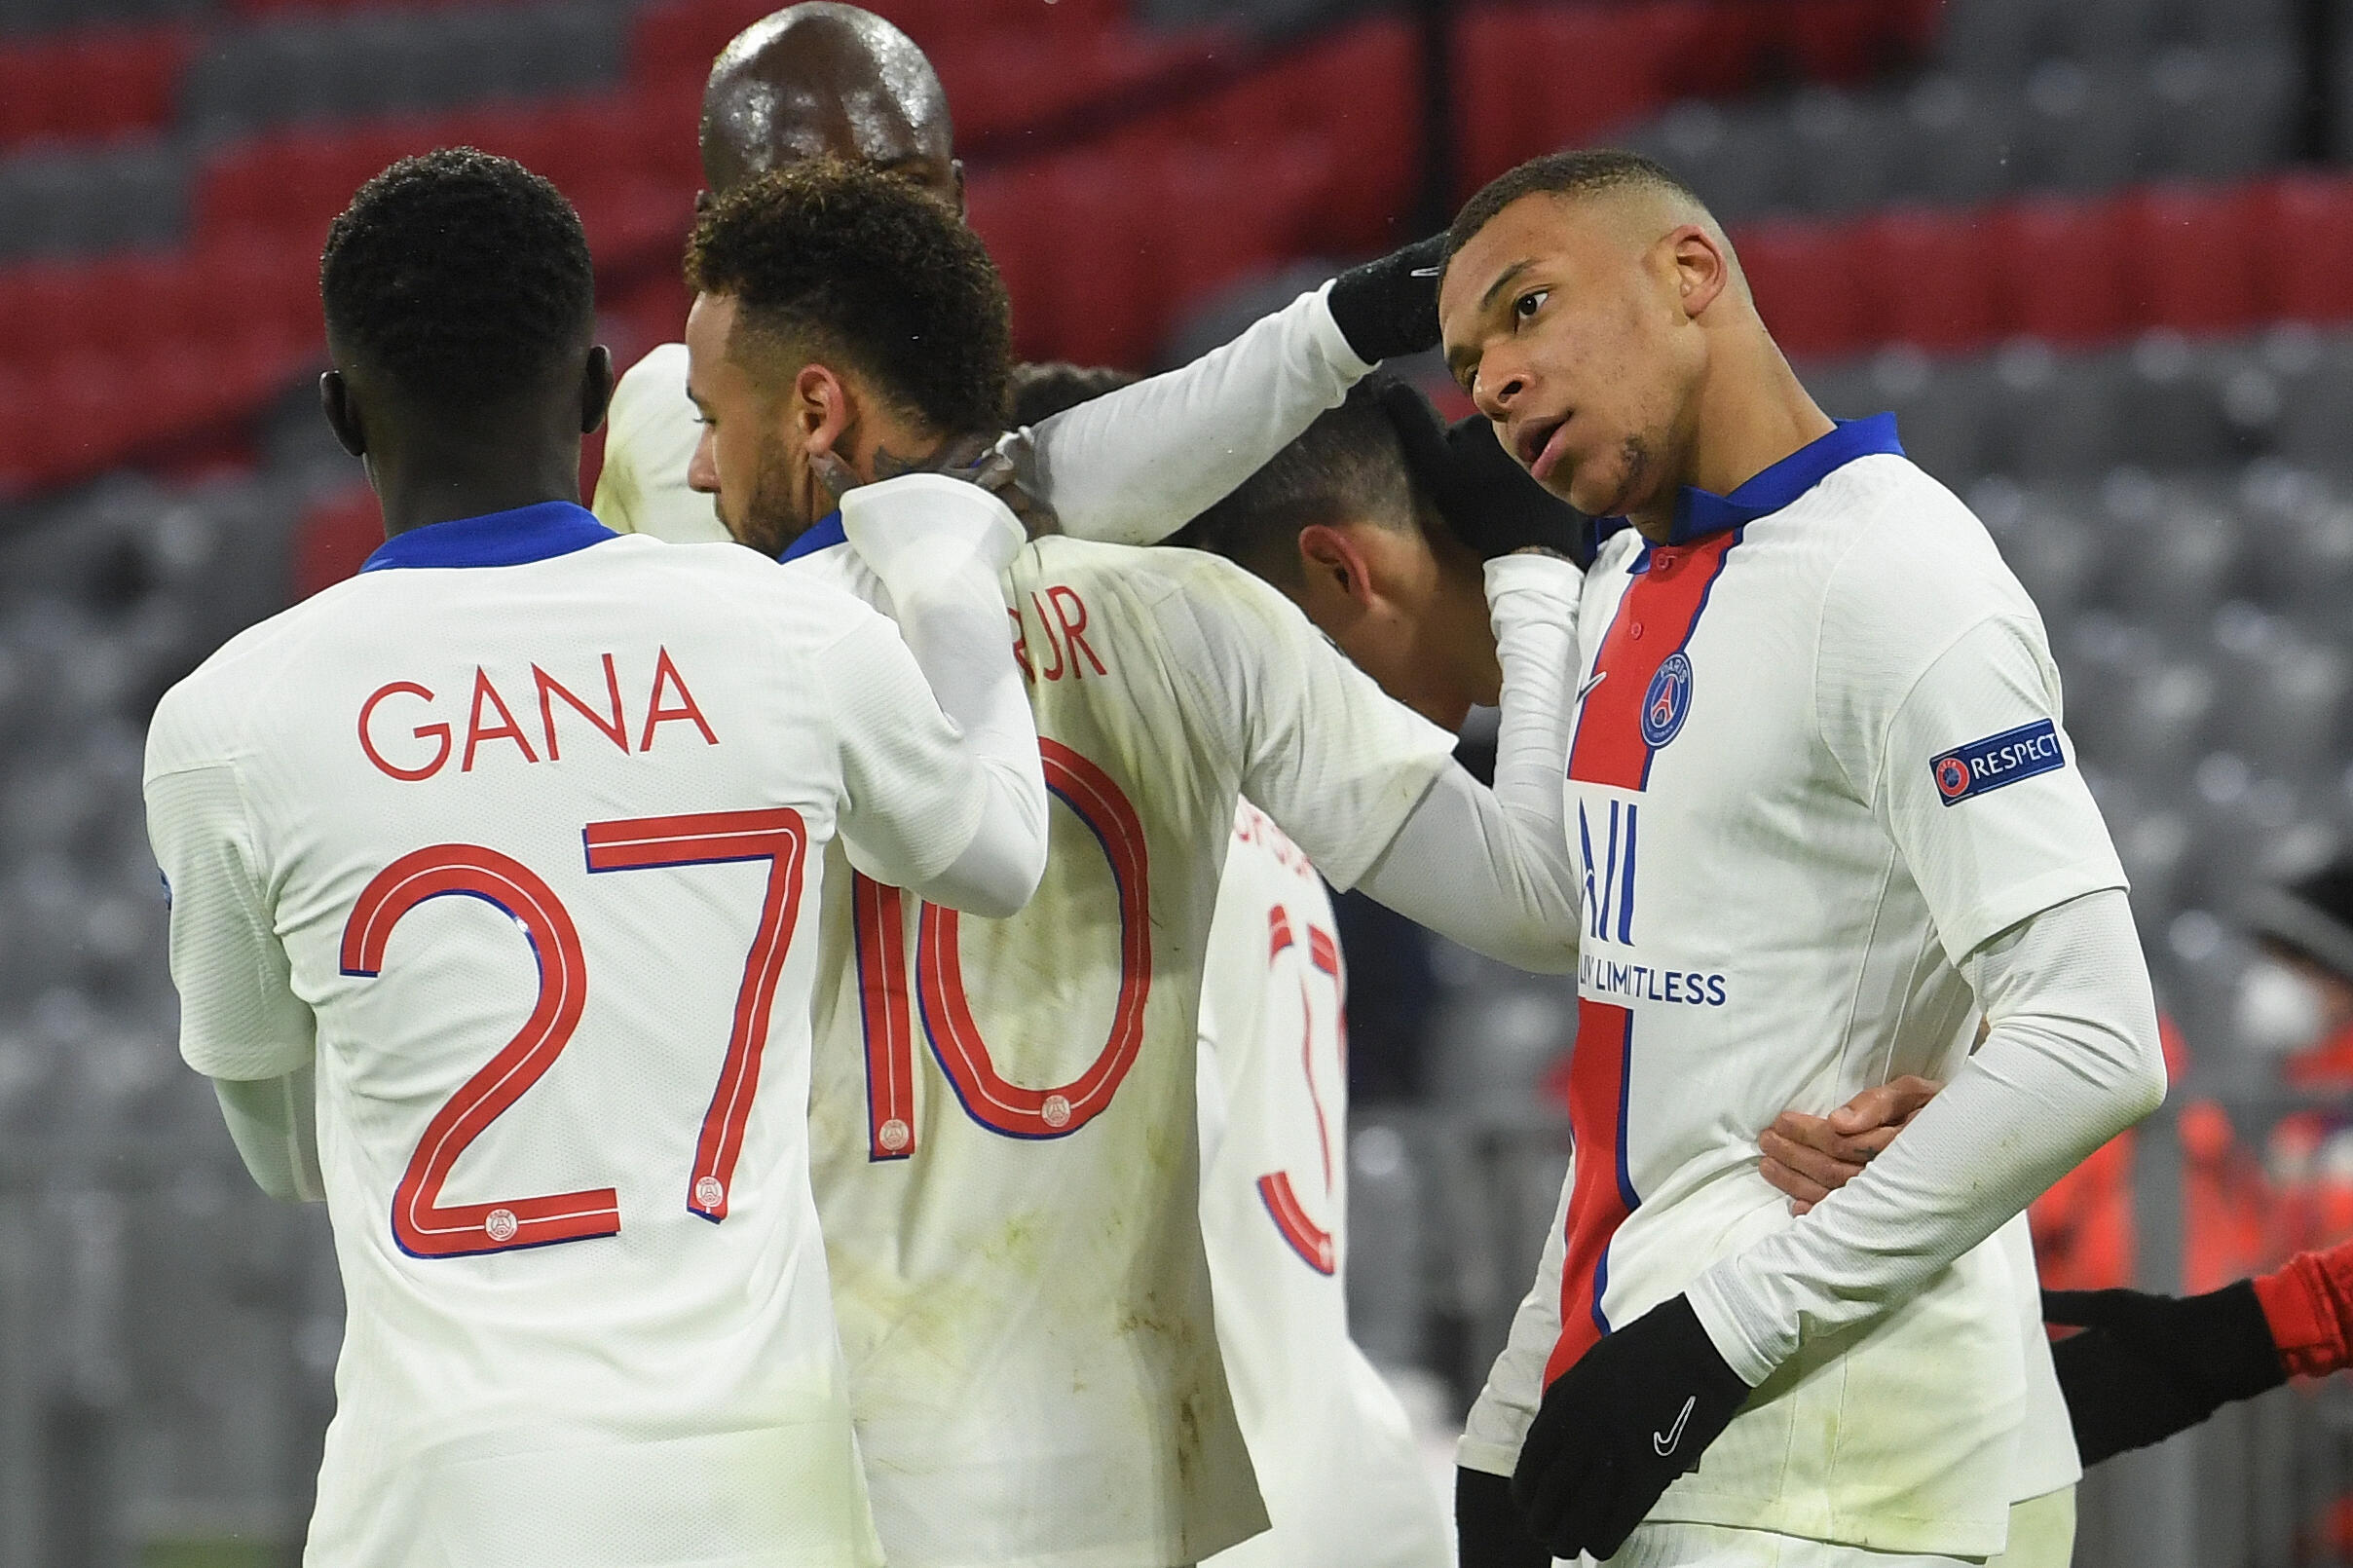 Kylian Mbappe (R) celebrates with his Paris Saint-Germain team-mates after scoring his second goal against Bayern Munich on Wednesday